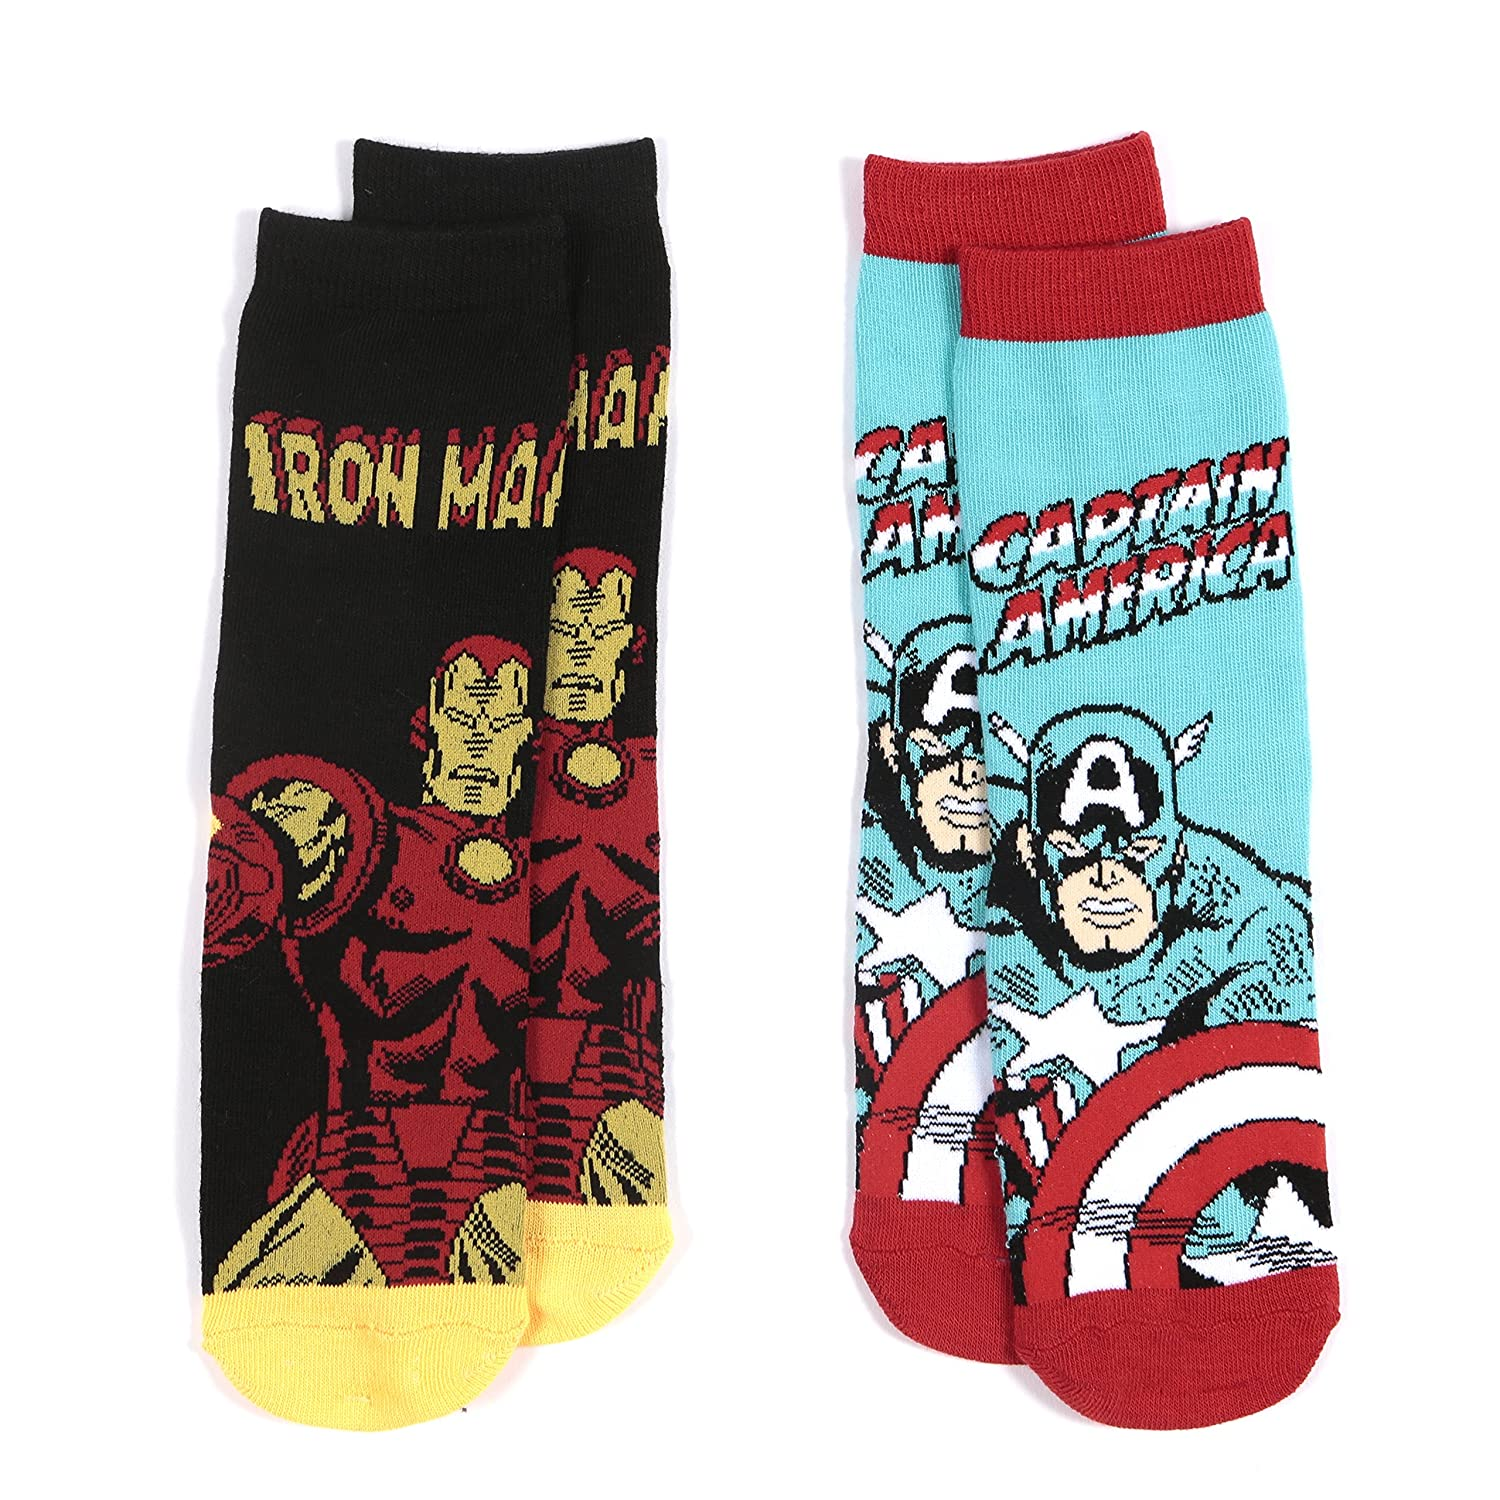 Boys Ankle Socks AVENGERS - 2 Pack Pair - Pack 1 Combination - Captain America & Iron Man UK Size 9-12 (EU 27-30)